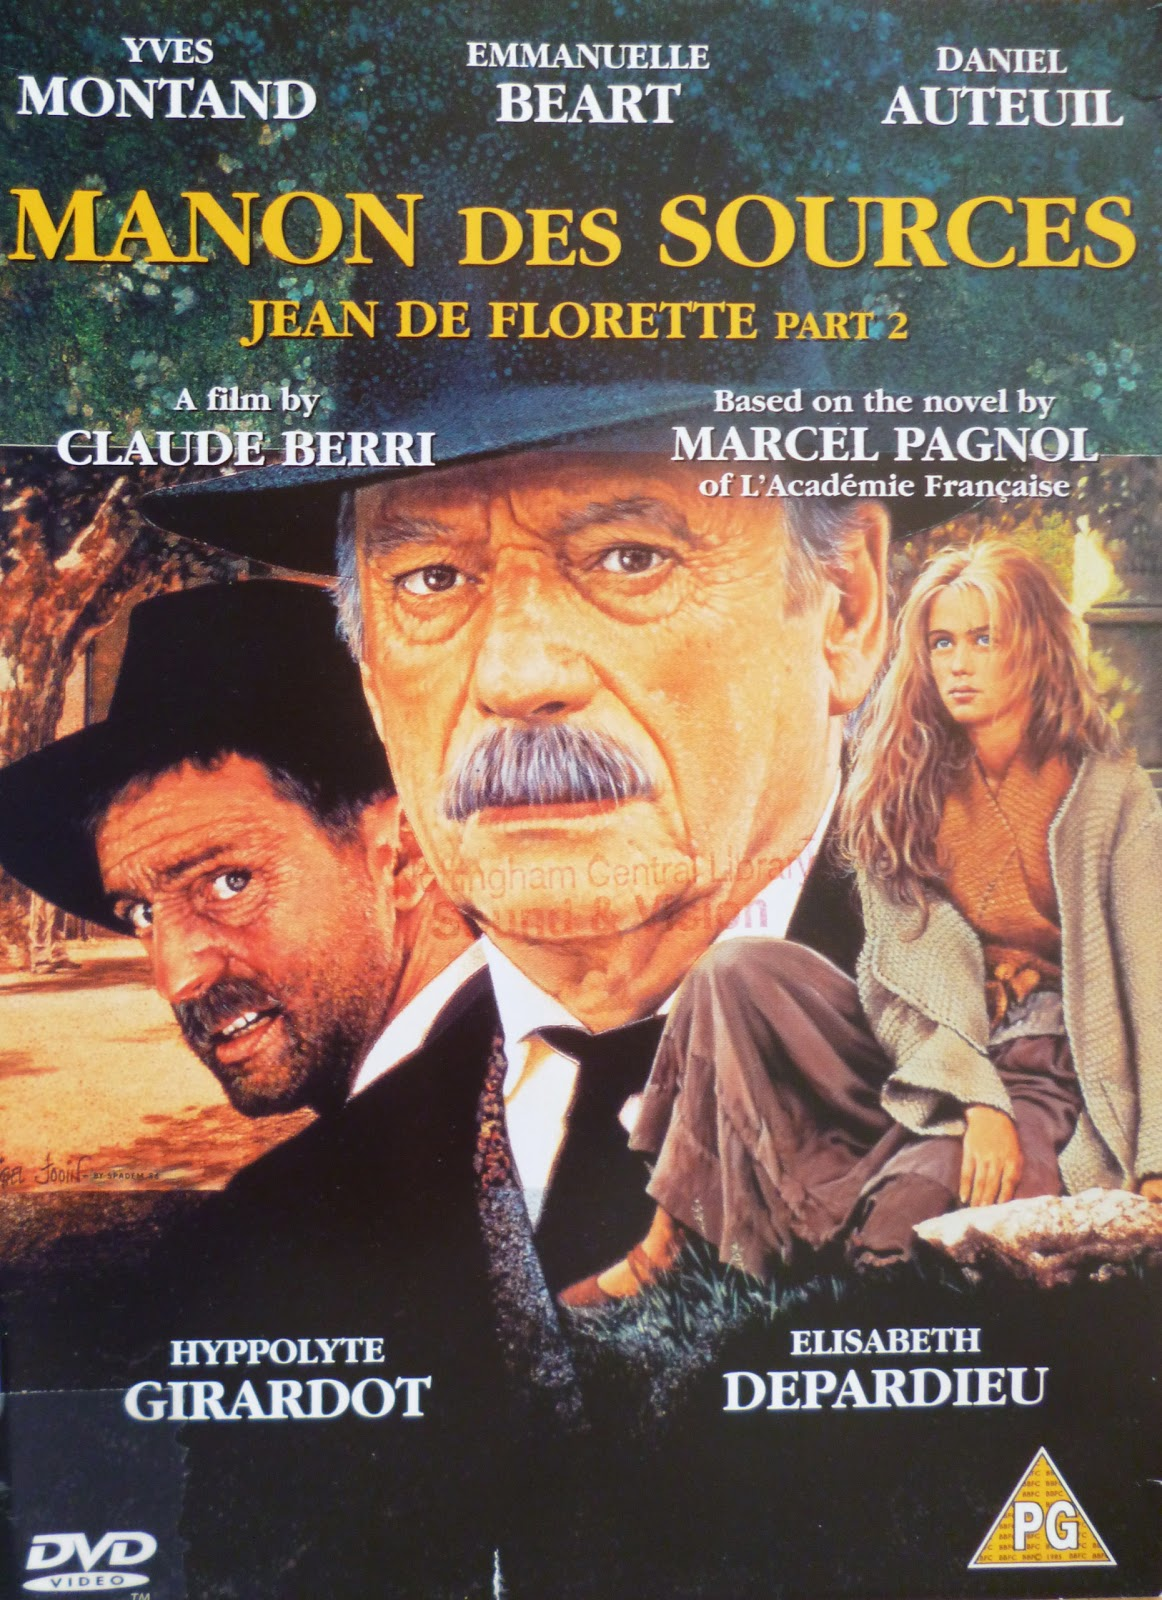 manon des sources essay Manon des sources-berri to find out more about this title and to purchase by paypal/card please follow this link to my new dolanguages site which combines french, german and spanish resources in one place.